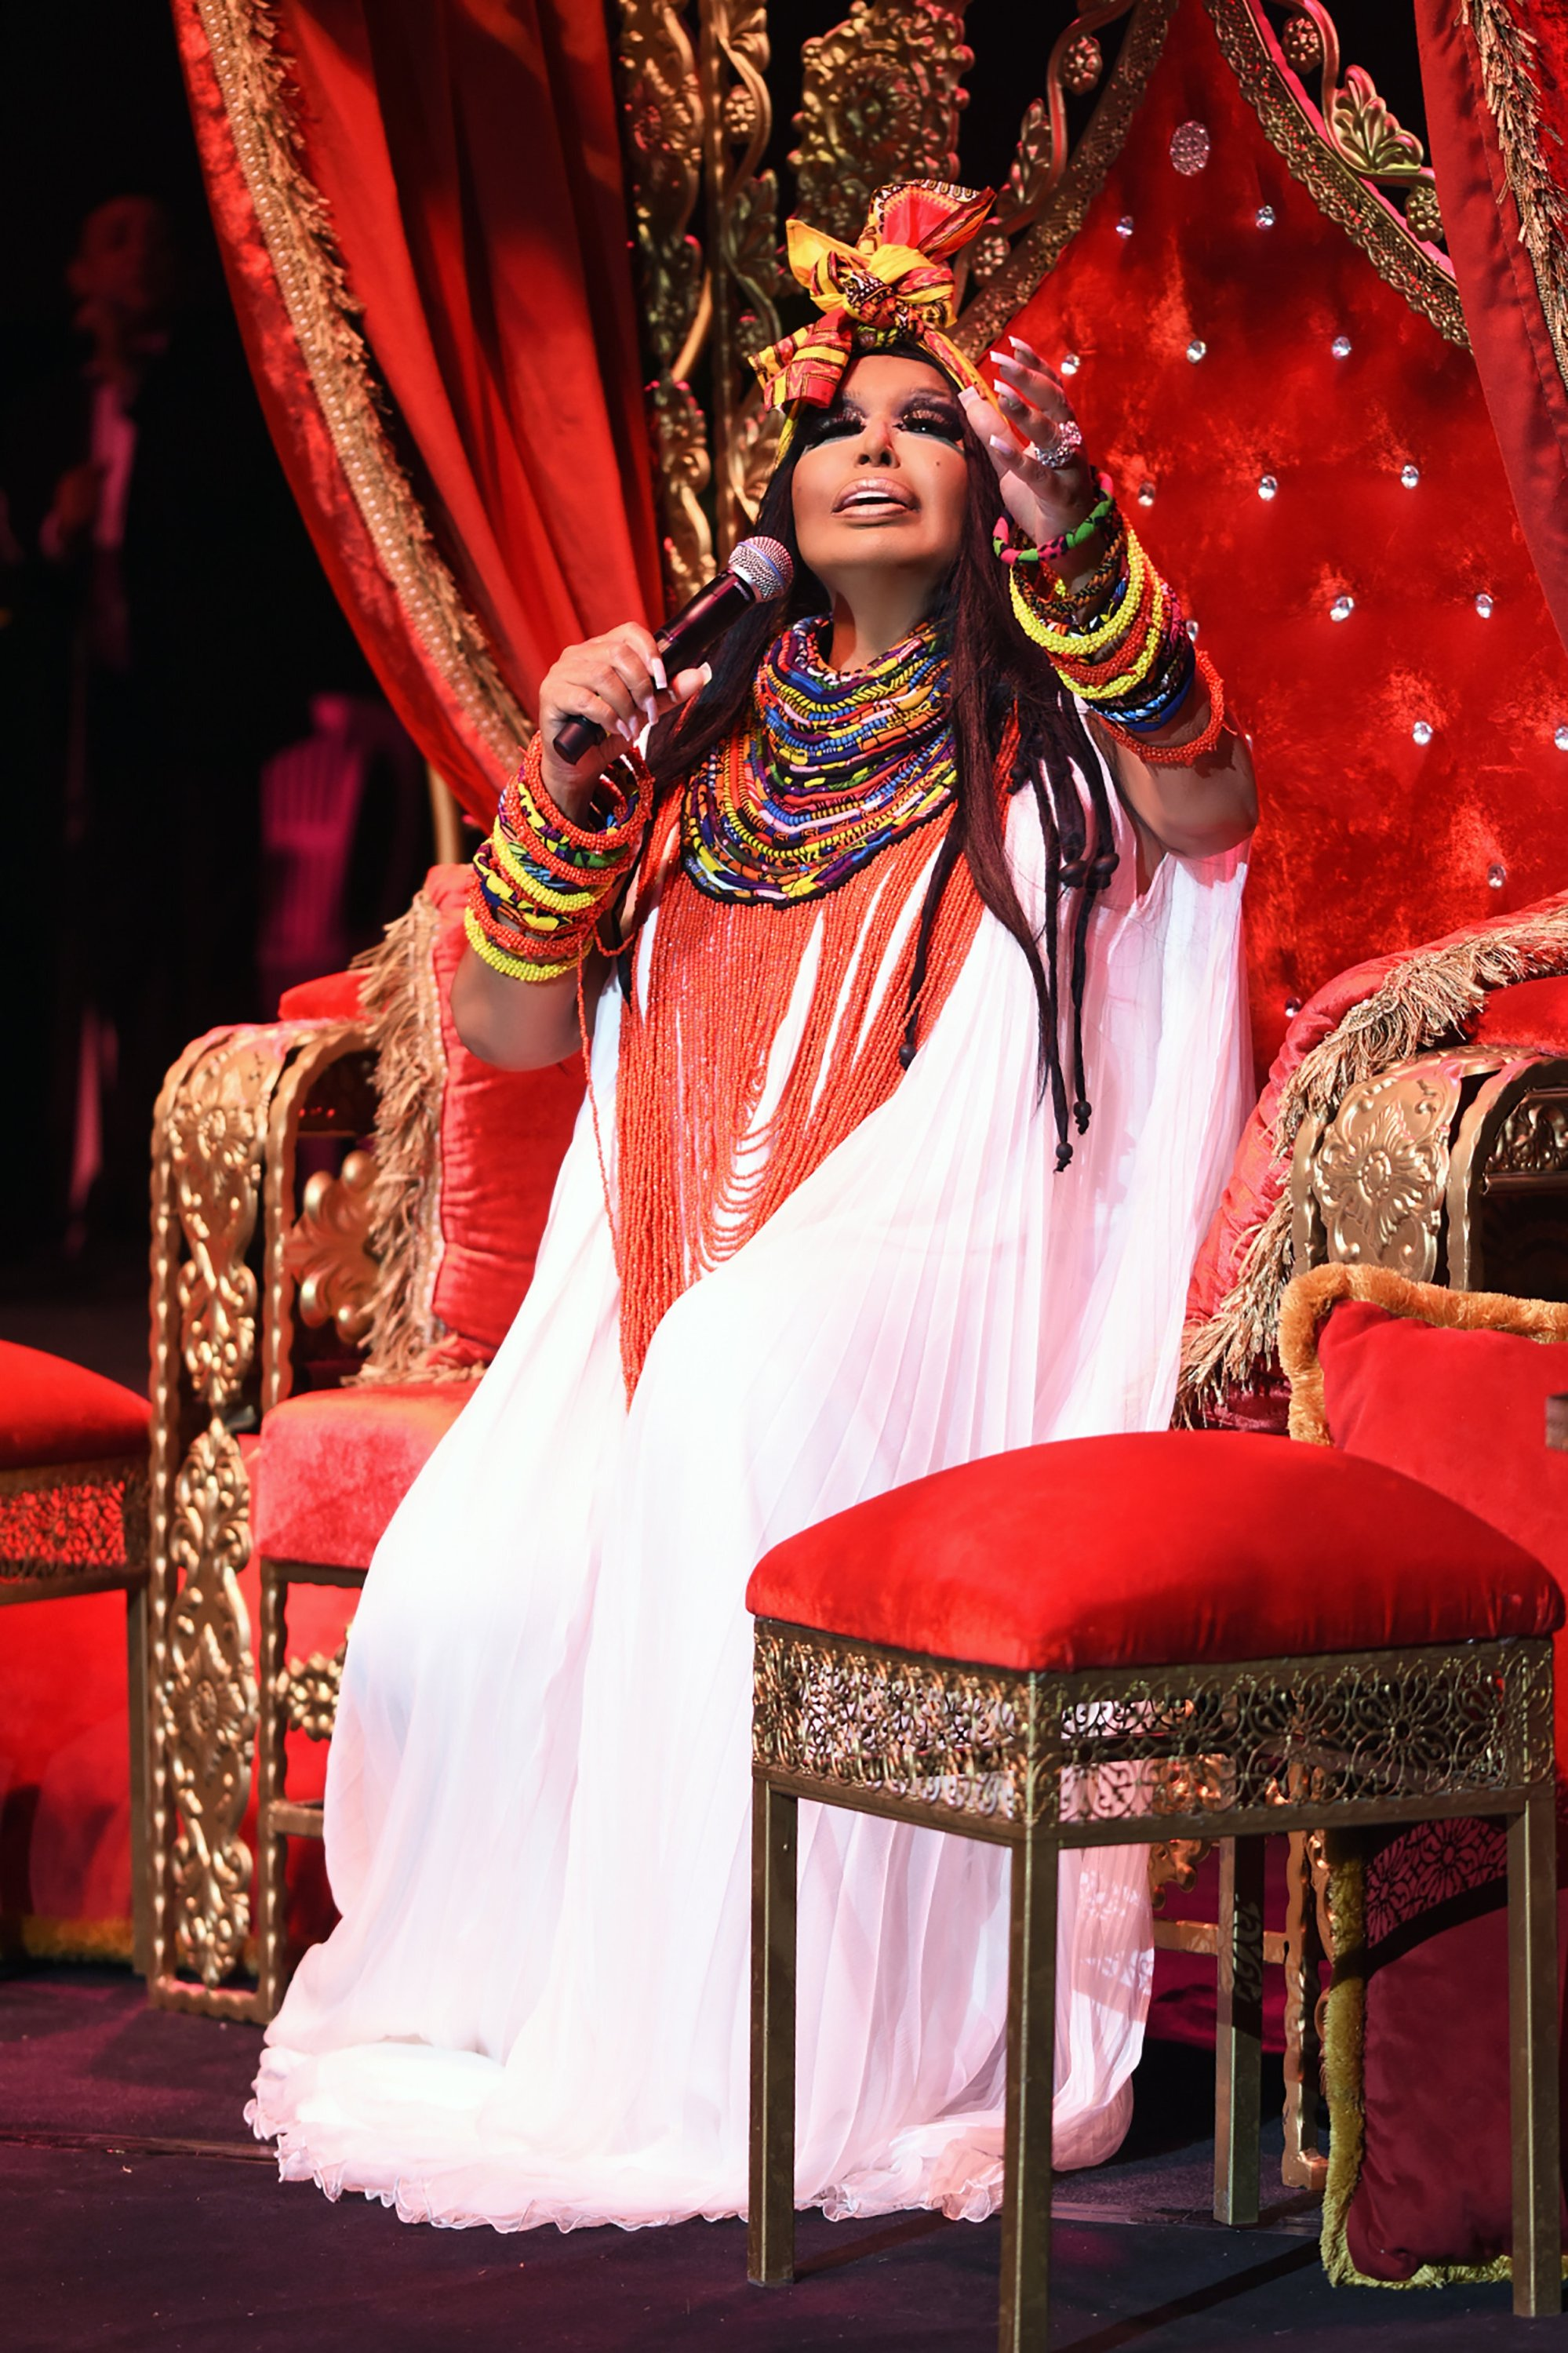 Bülent Ersoy was formally recognized as a woman on her identification and allowed to perform on stage after the change of the law banning transgender artists in 1989. (Archive Photo)